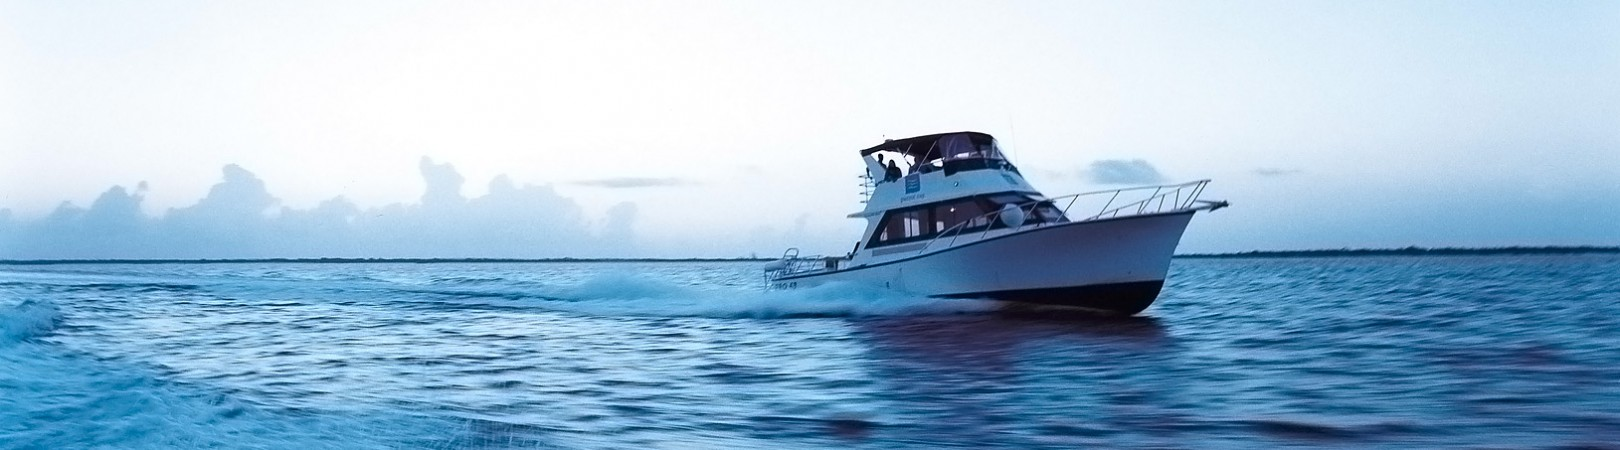 Turks-and-Caicos-Fishing-Tours